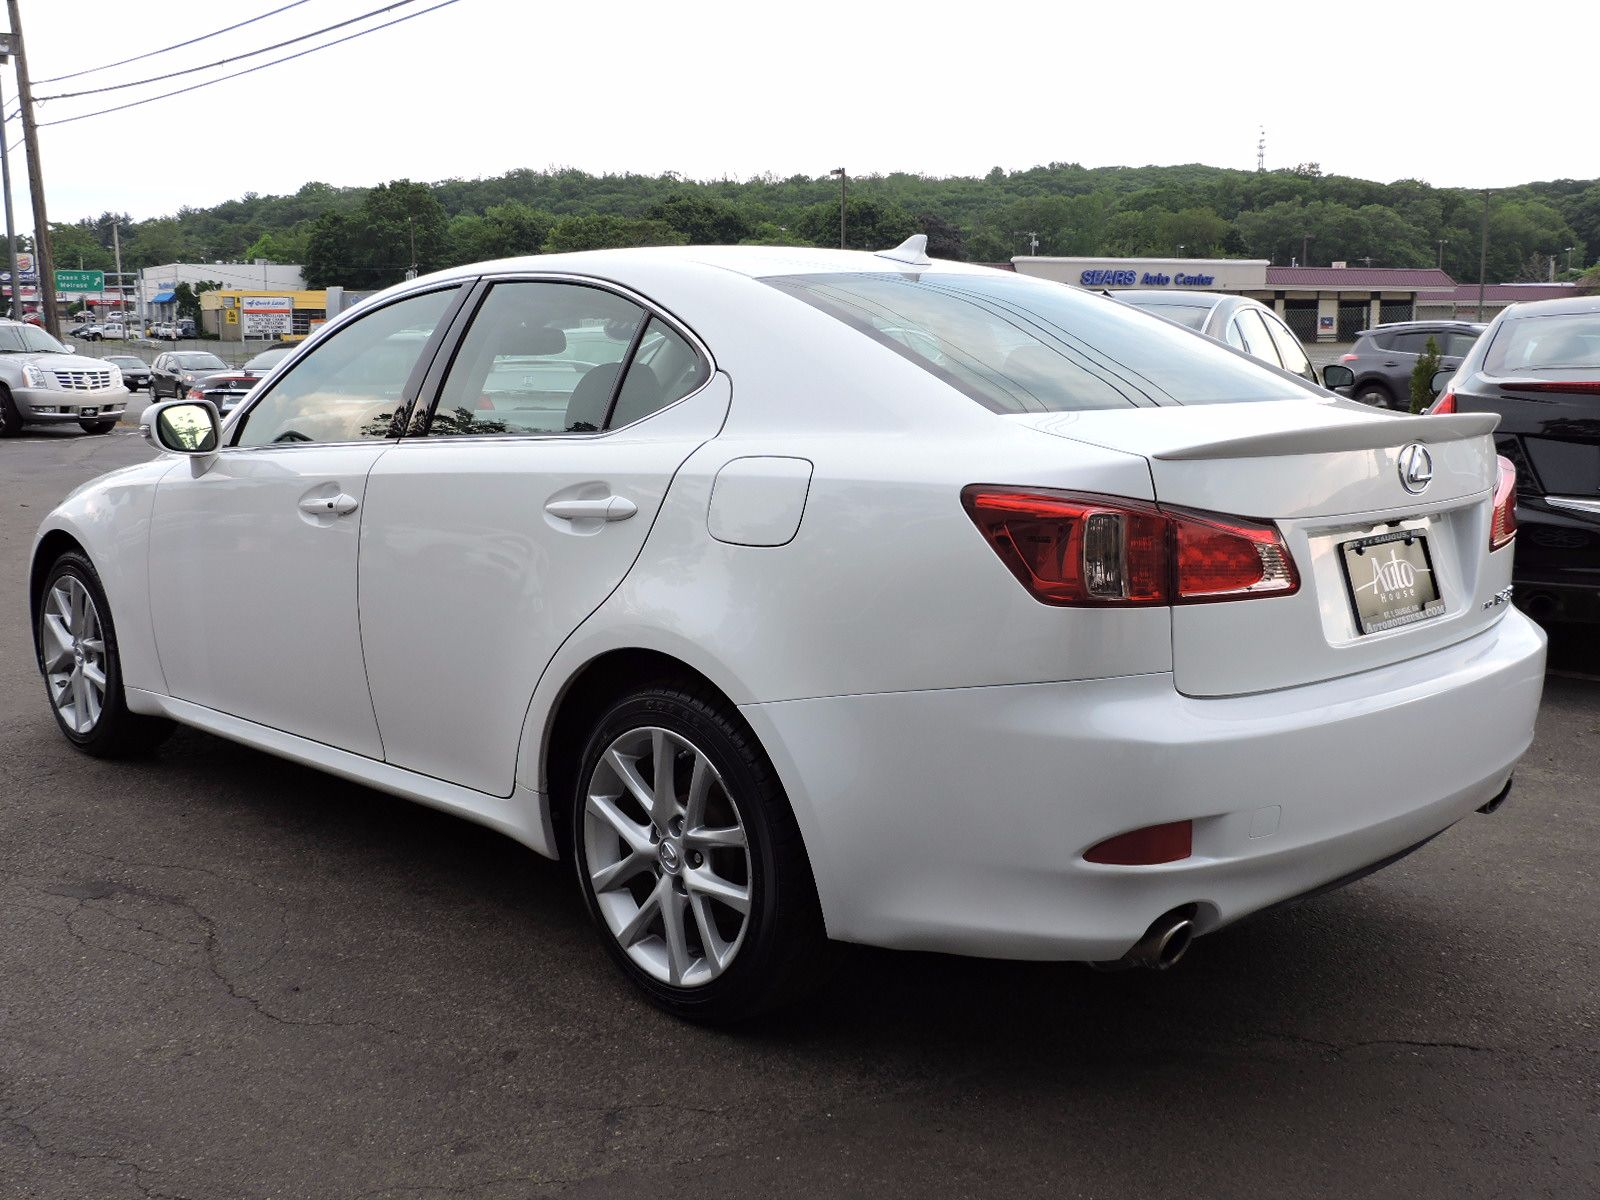 2011 Lexus IS 250 - All Wheel Drive - Navigation